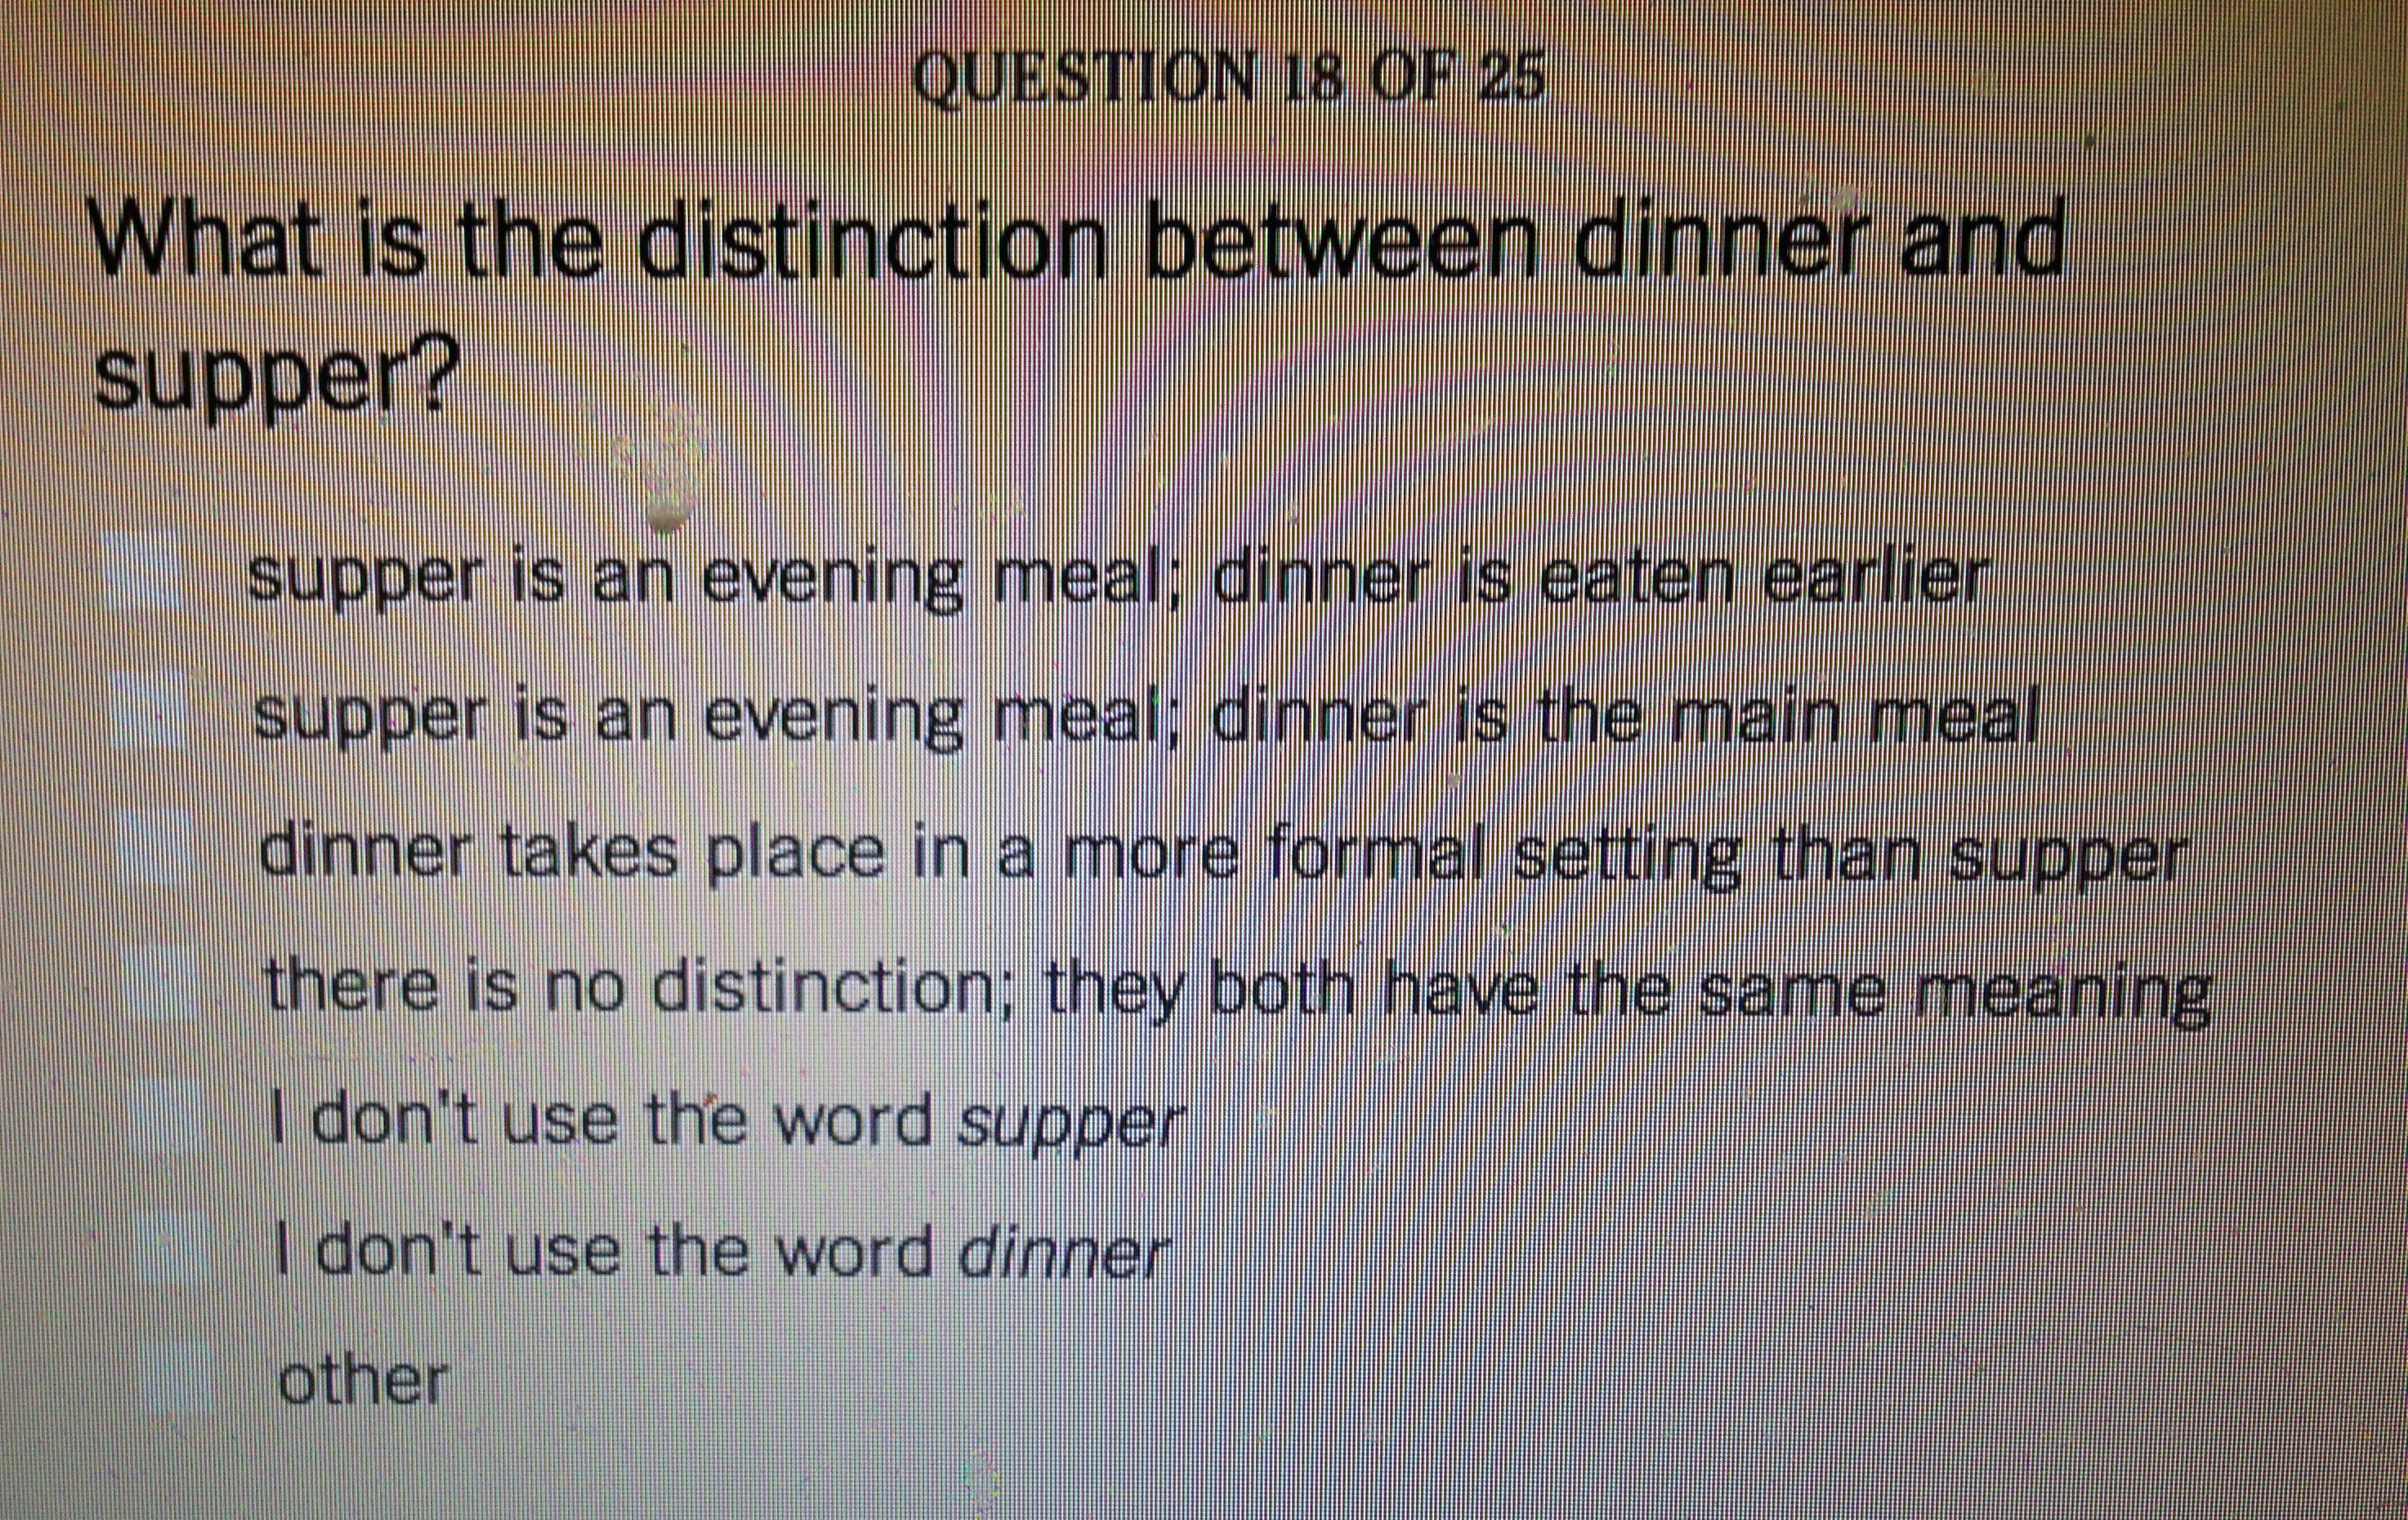 What'S The Difference Between Dinner And Supper  Though it looks like dinner it's really our supper